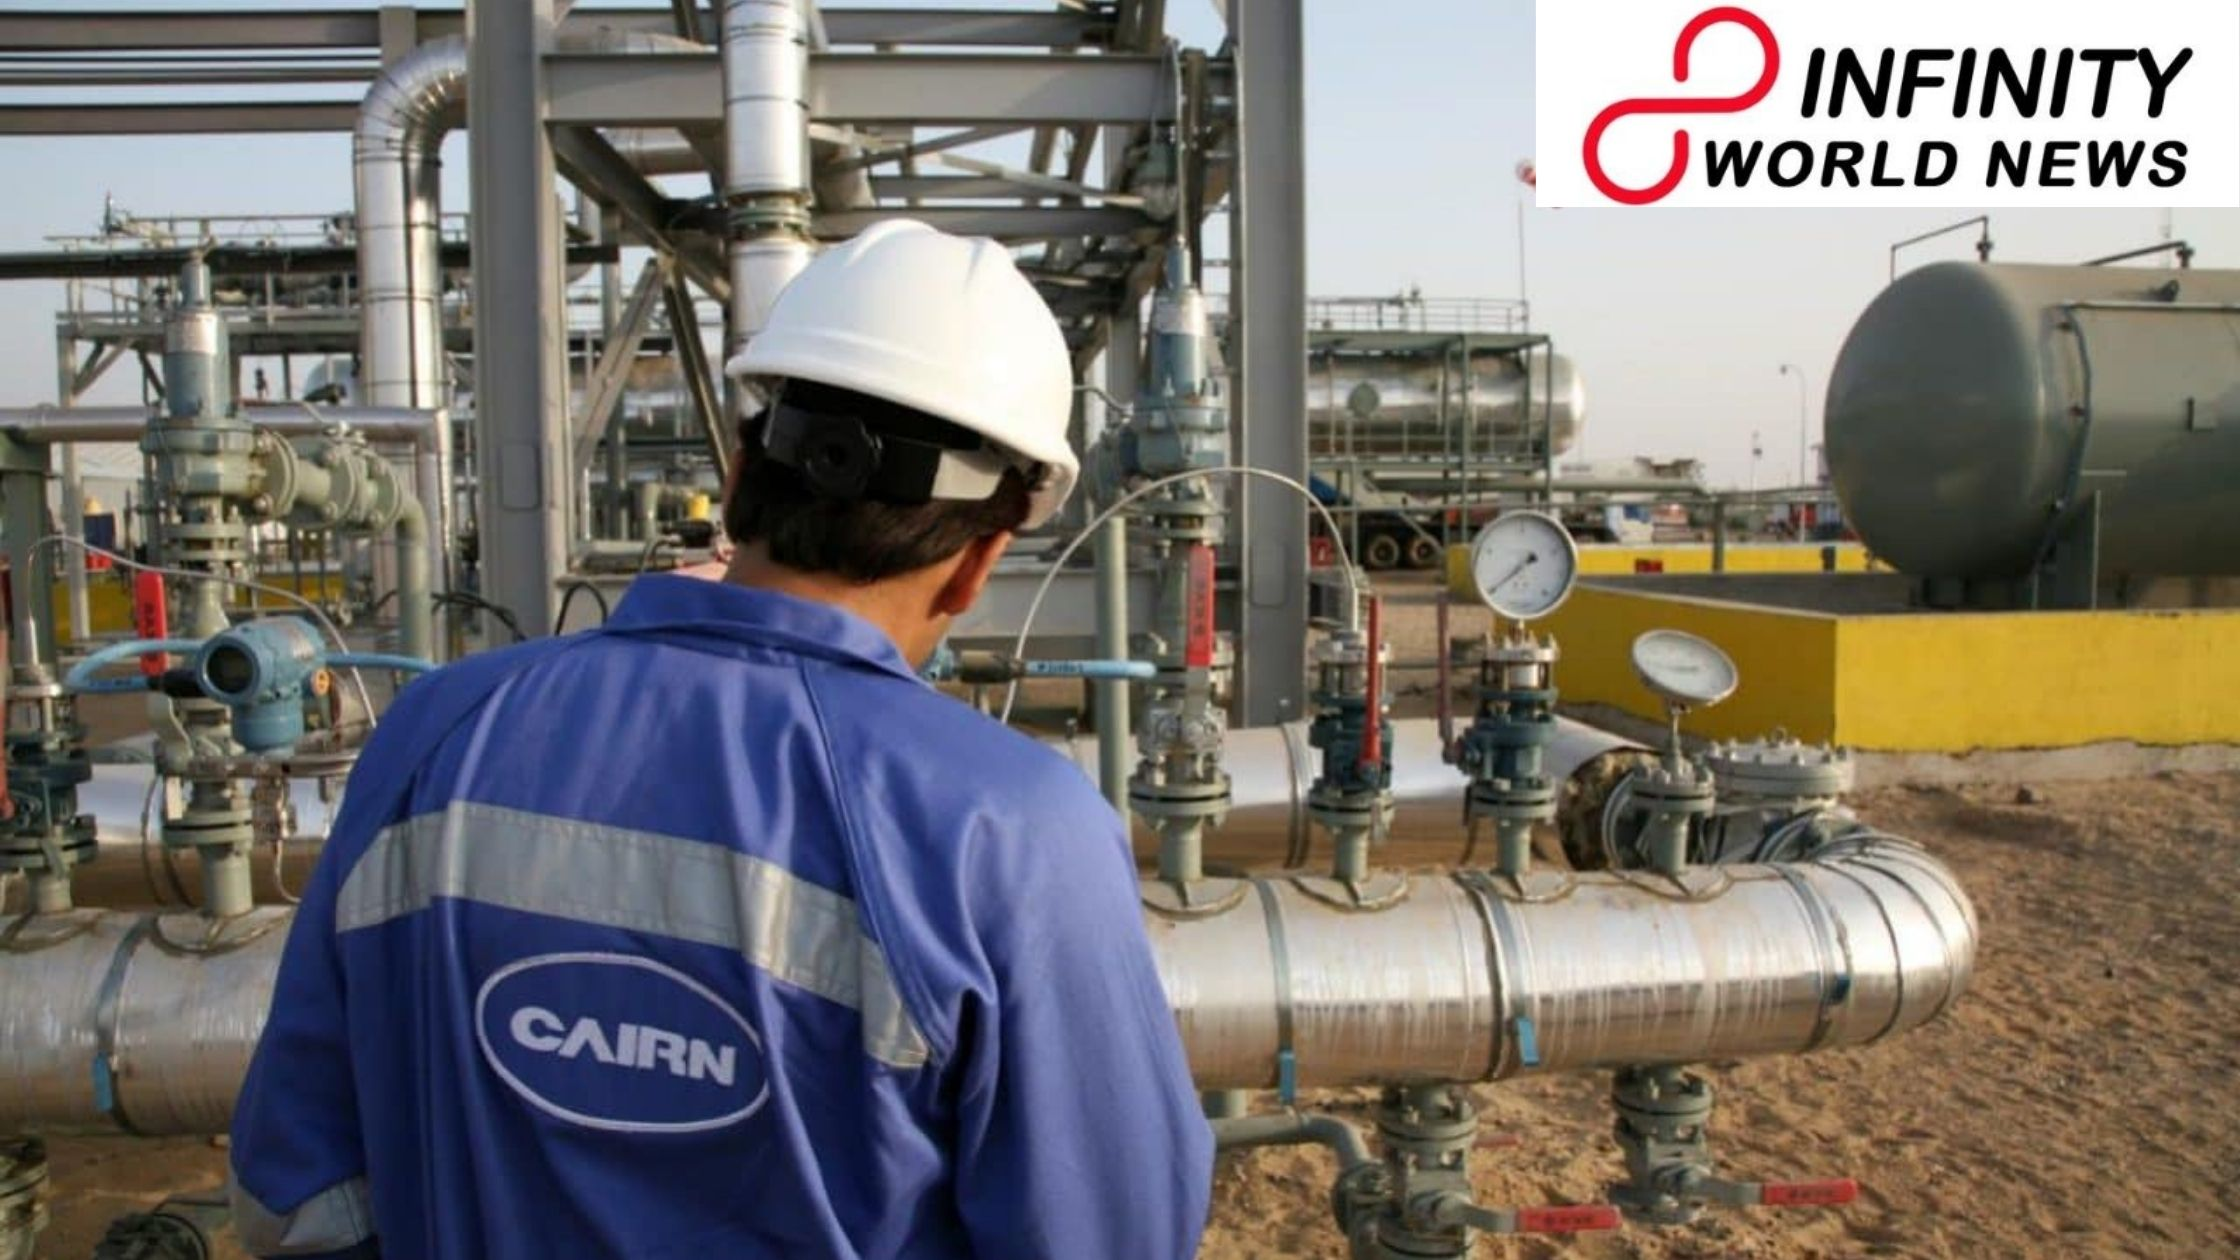 To Make India Spend $1.2 Billion Award, Cairn Files Case In U.S.